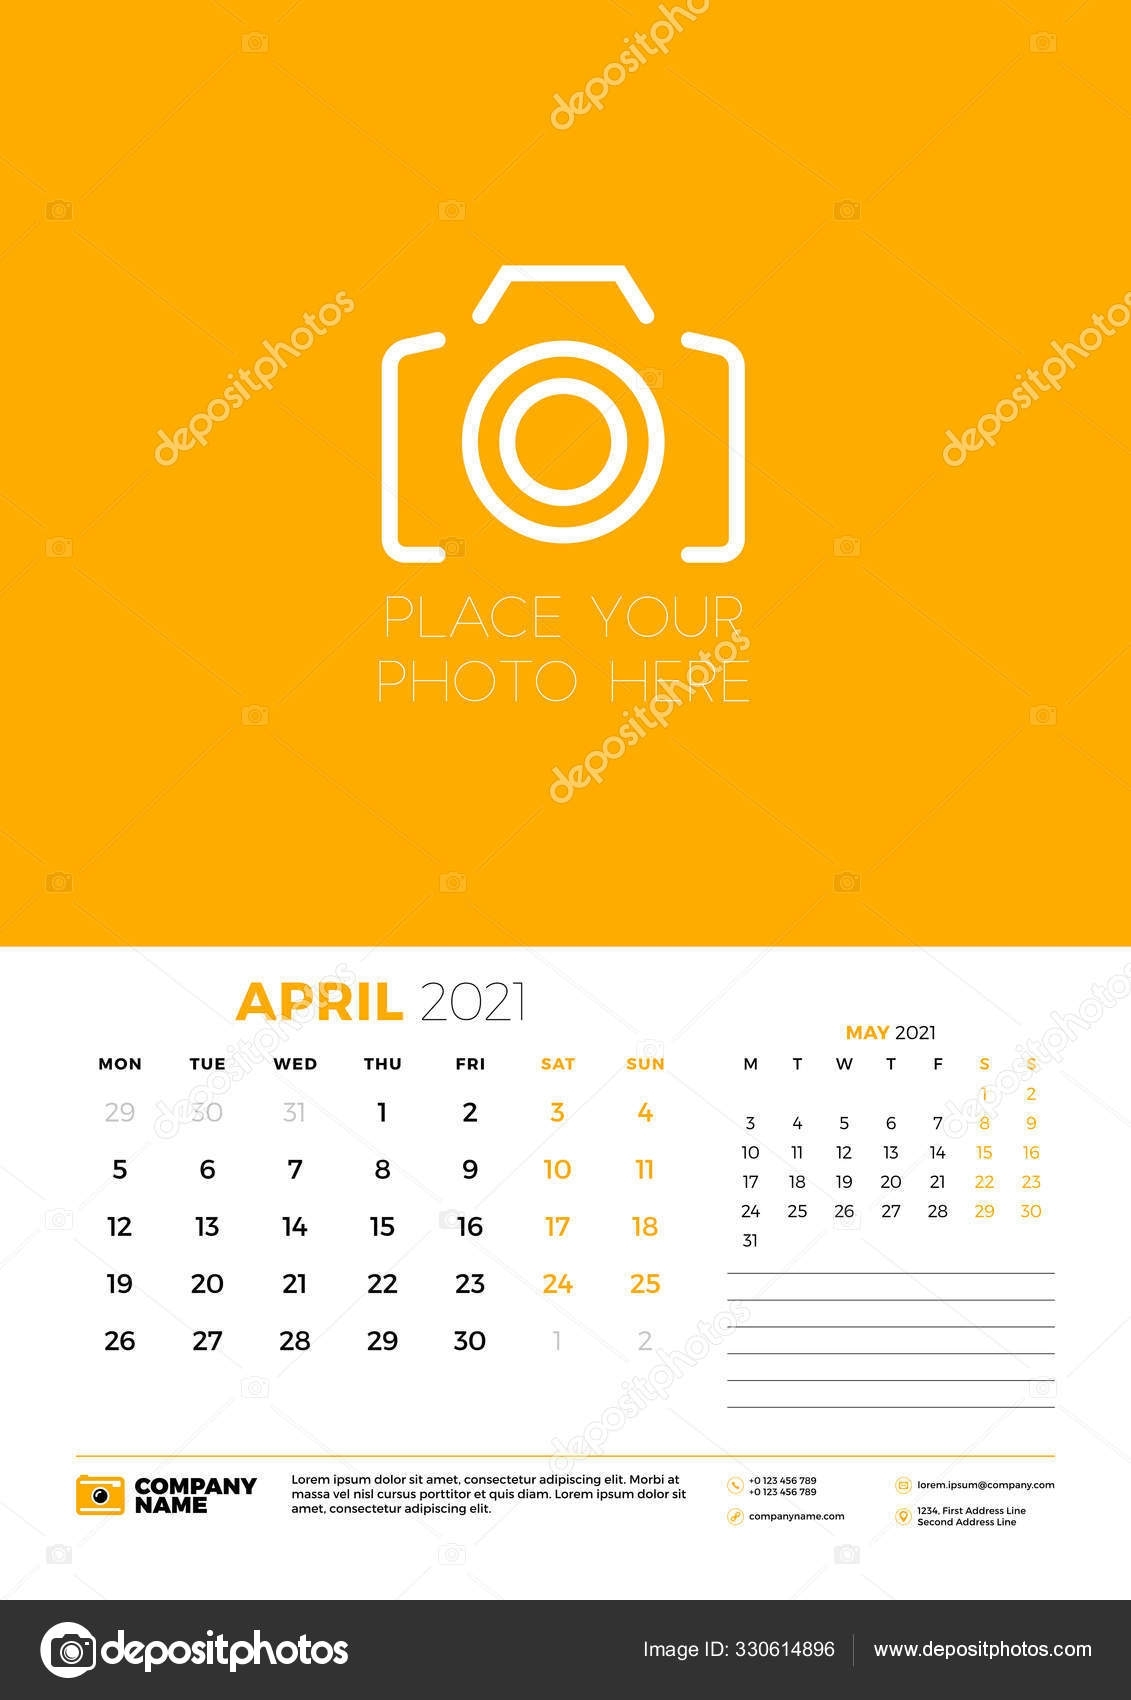 Calendar For April 2021. Week Starts On Monday. Wall Calendar Planner  Template. Vector Illustration 330614896